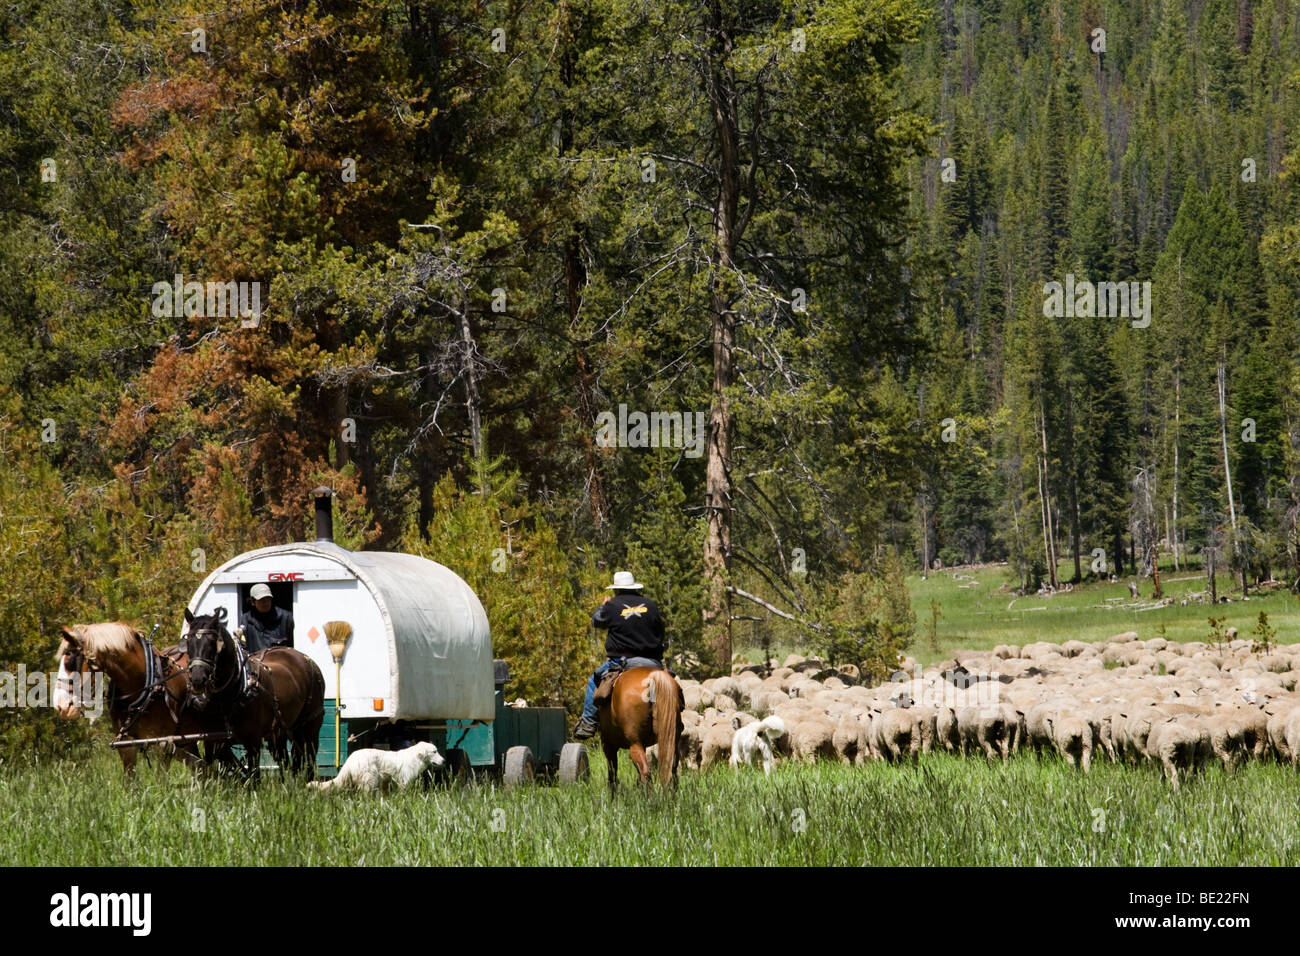 Shepherds and their sheep wagon, in Idaho - Stock Image